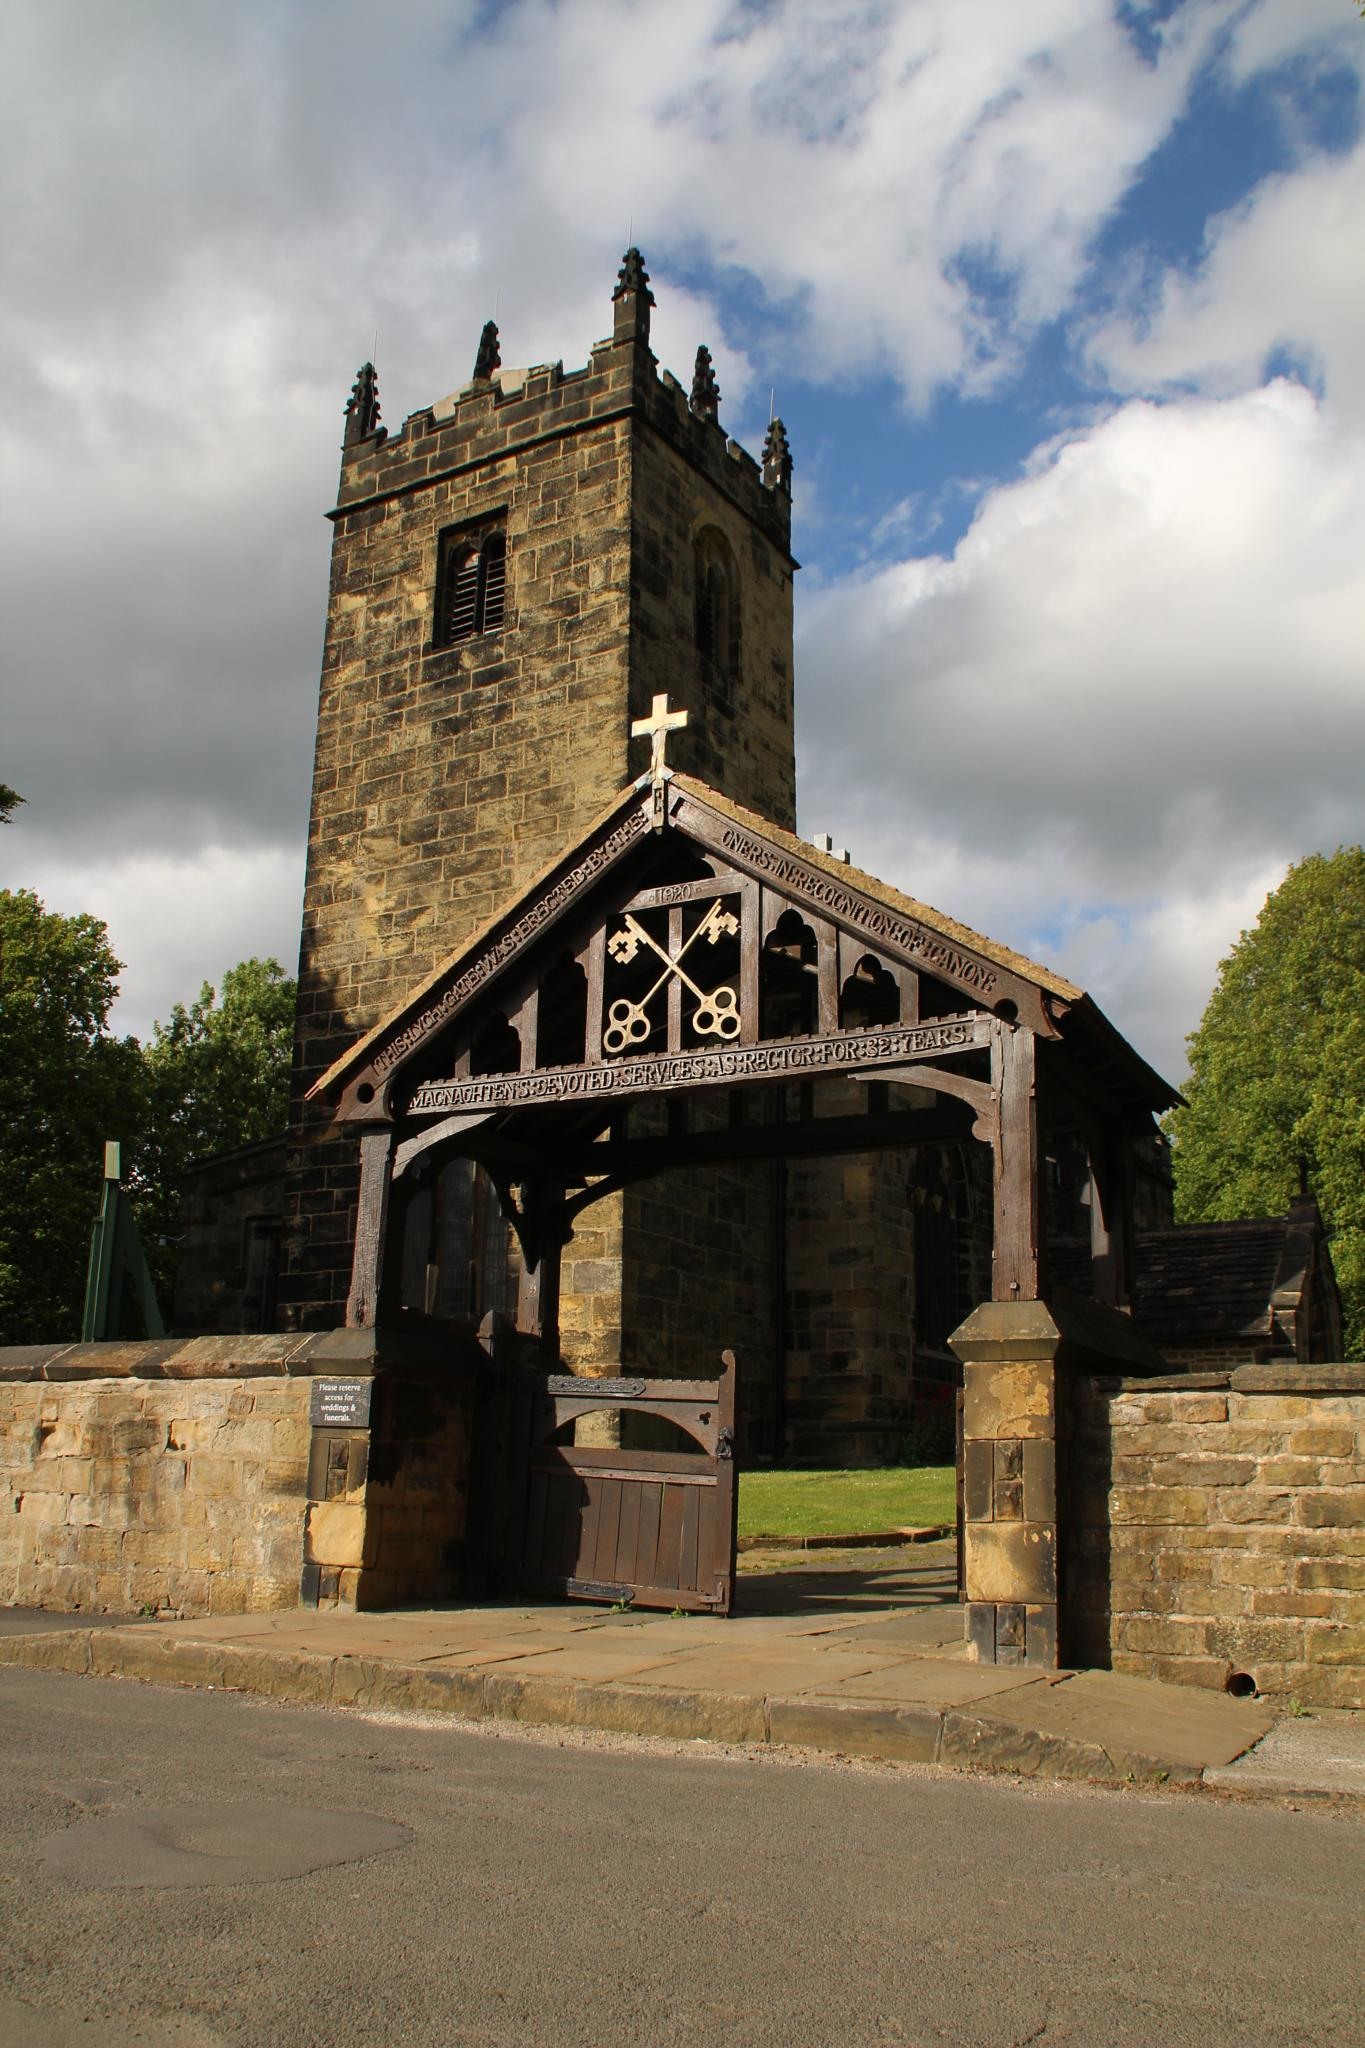 Tankersley church and Lych gate by alijhawkins